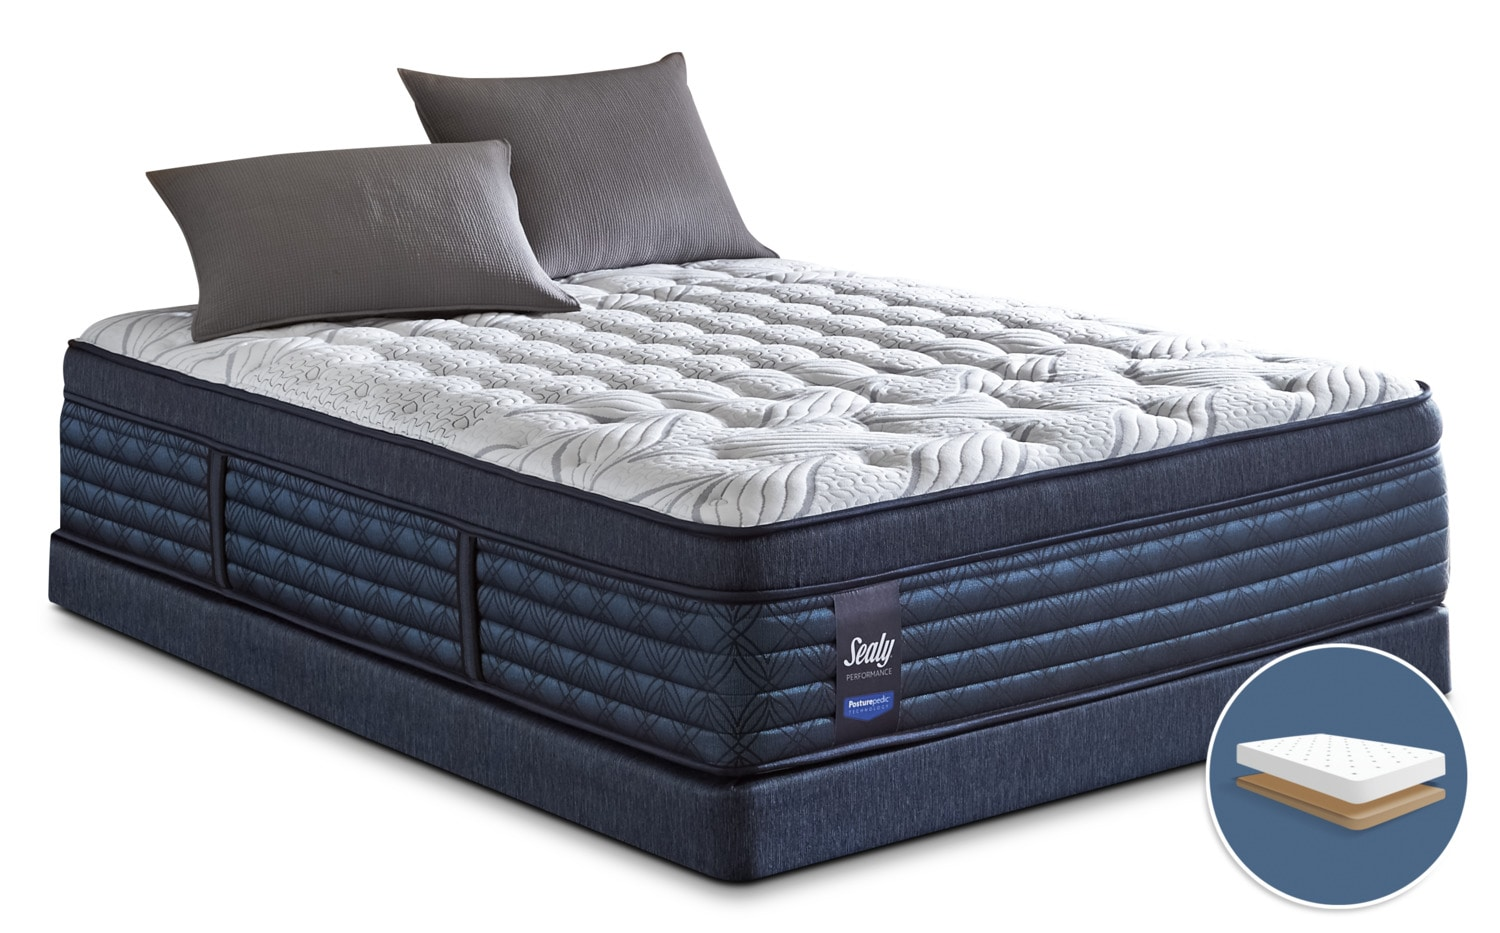 Sealy Posturepedic Hockenheim Euro-Top Firm Low-Profile Full Mattress Set